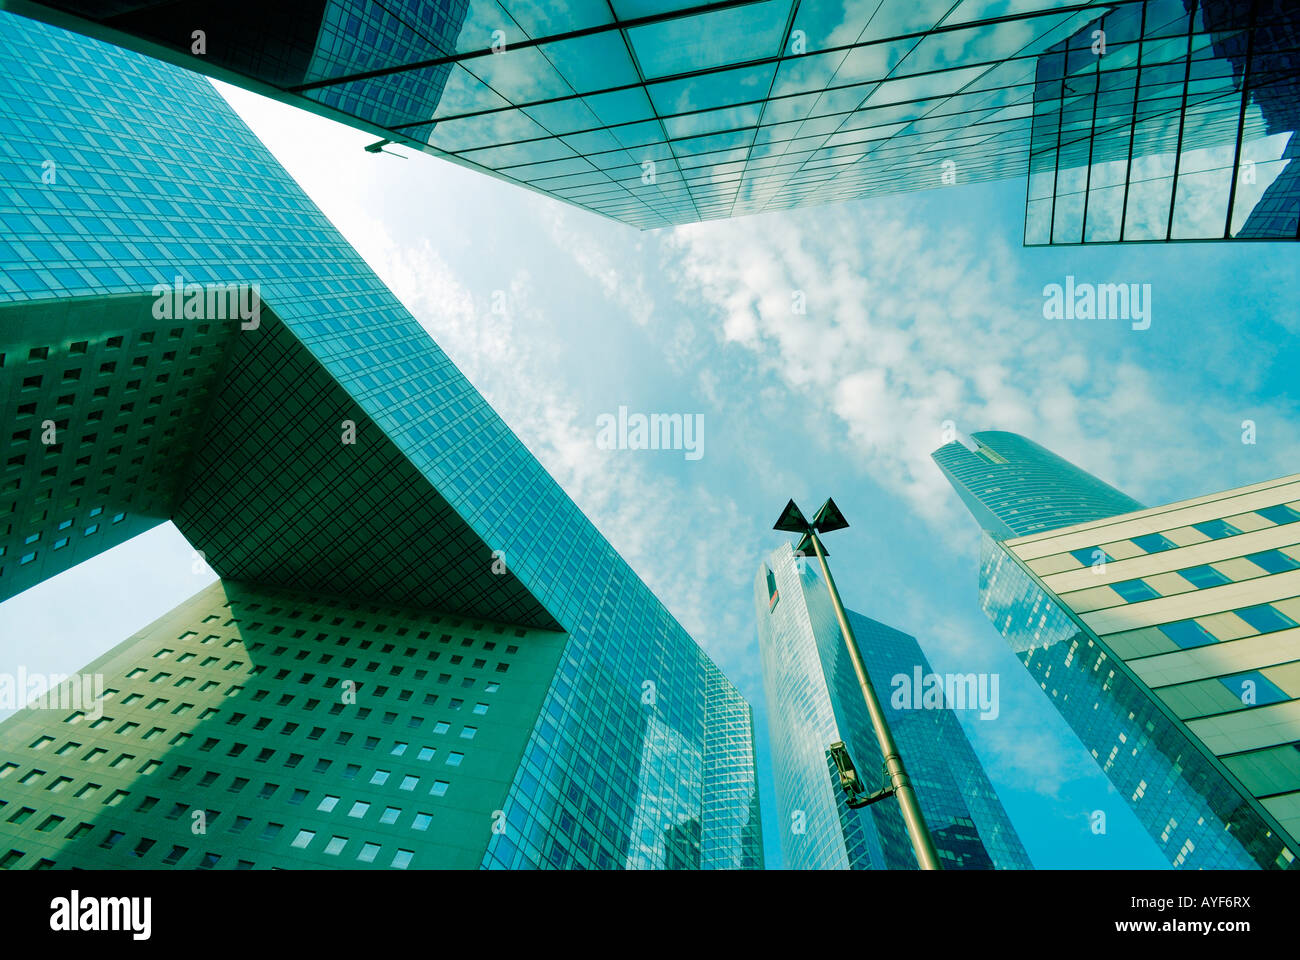 Gratte-ciel en quartier financier de la Défense Paris France Photo Stock